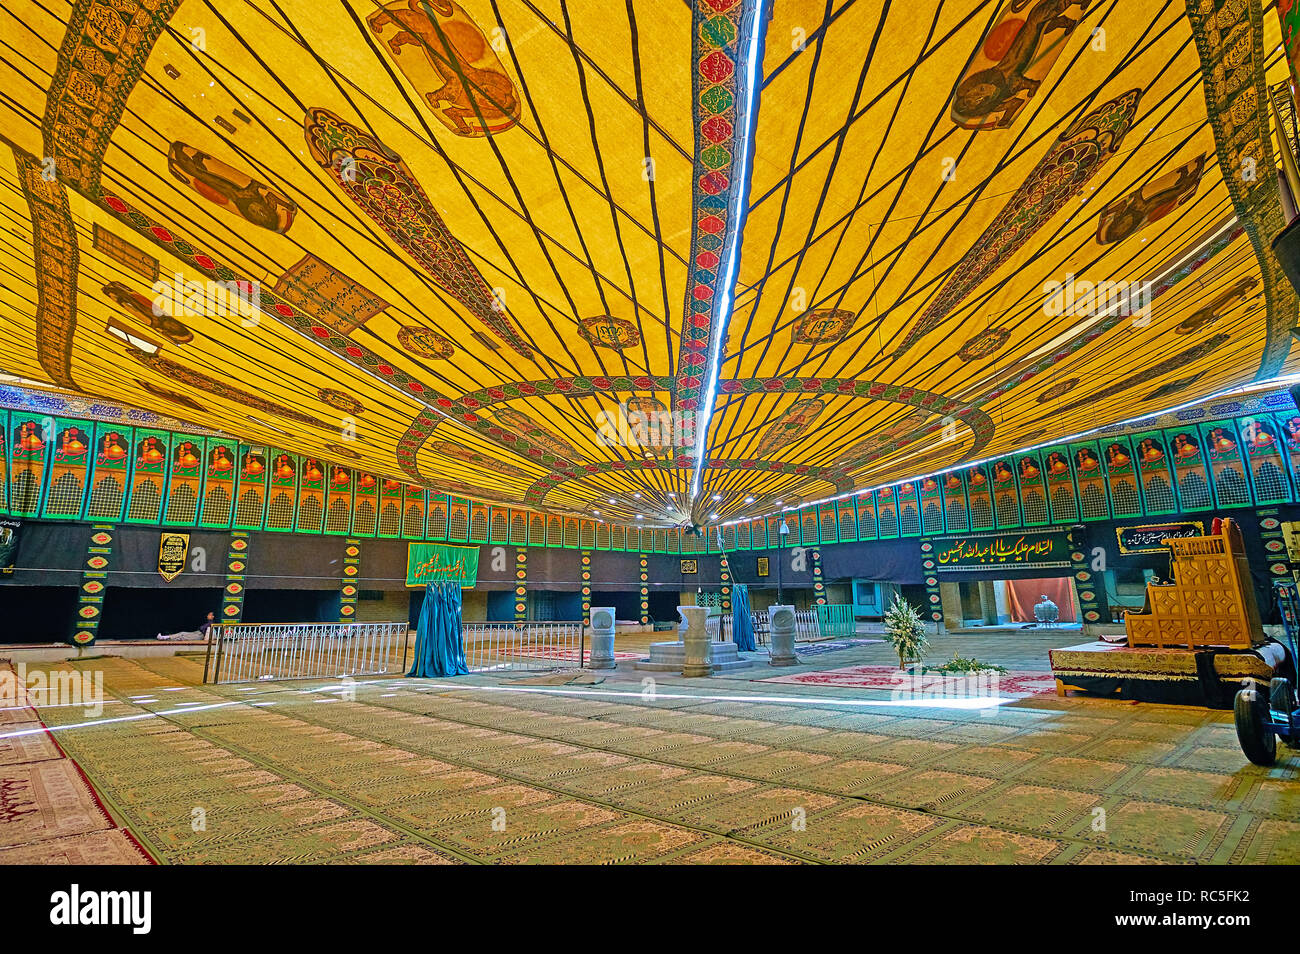 YAZD, IRAN - OCTOBER 18, 2017: The large tent, decorated with Persian patterns and Lion and Sun emblem, in Imam Zadeh Jafar Shrine, it serves as the p - Stock Image